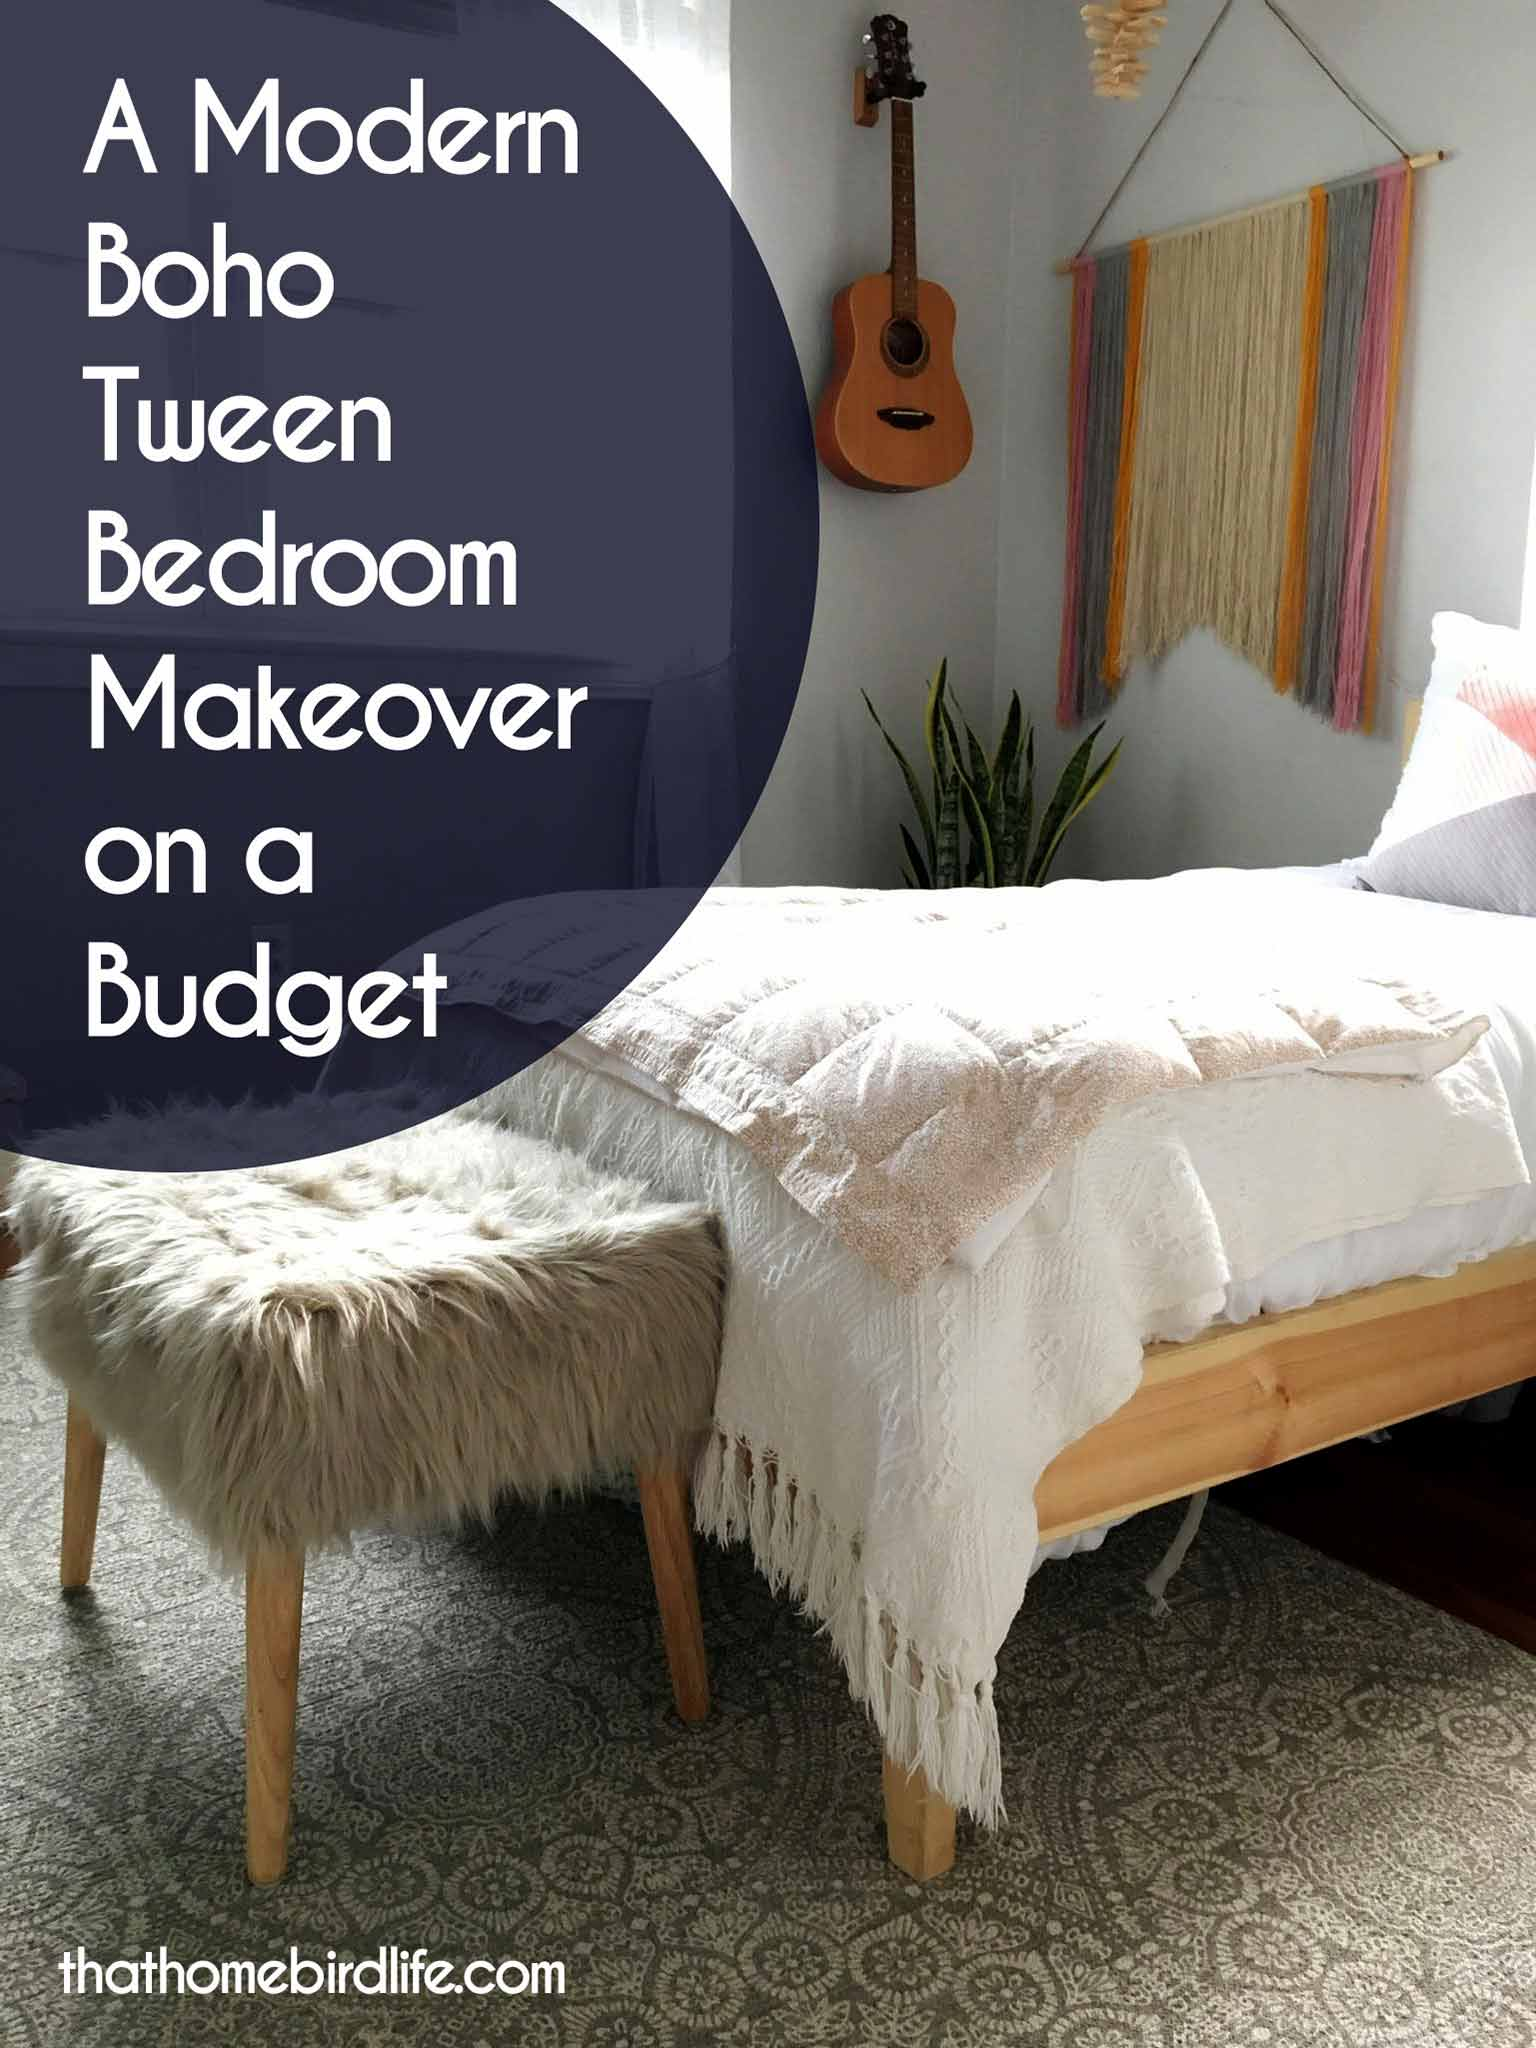 A Modern Boho Tween Bedroom Makeover on a Budget  That